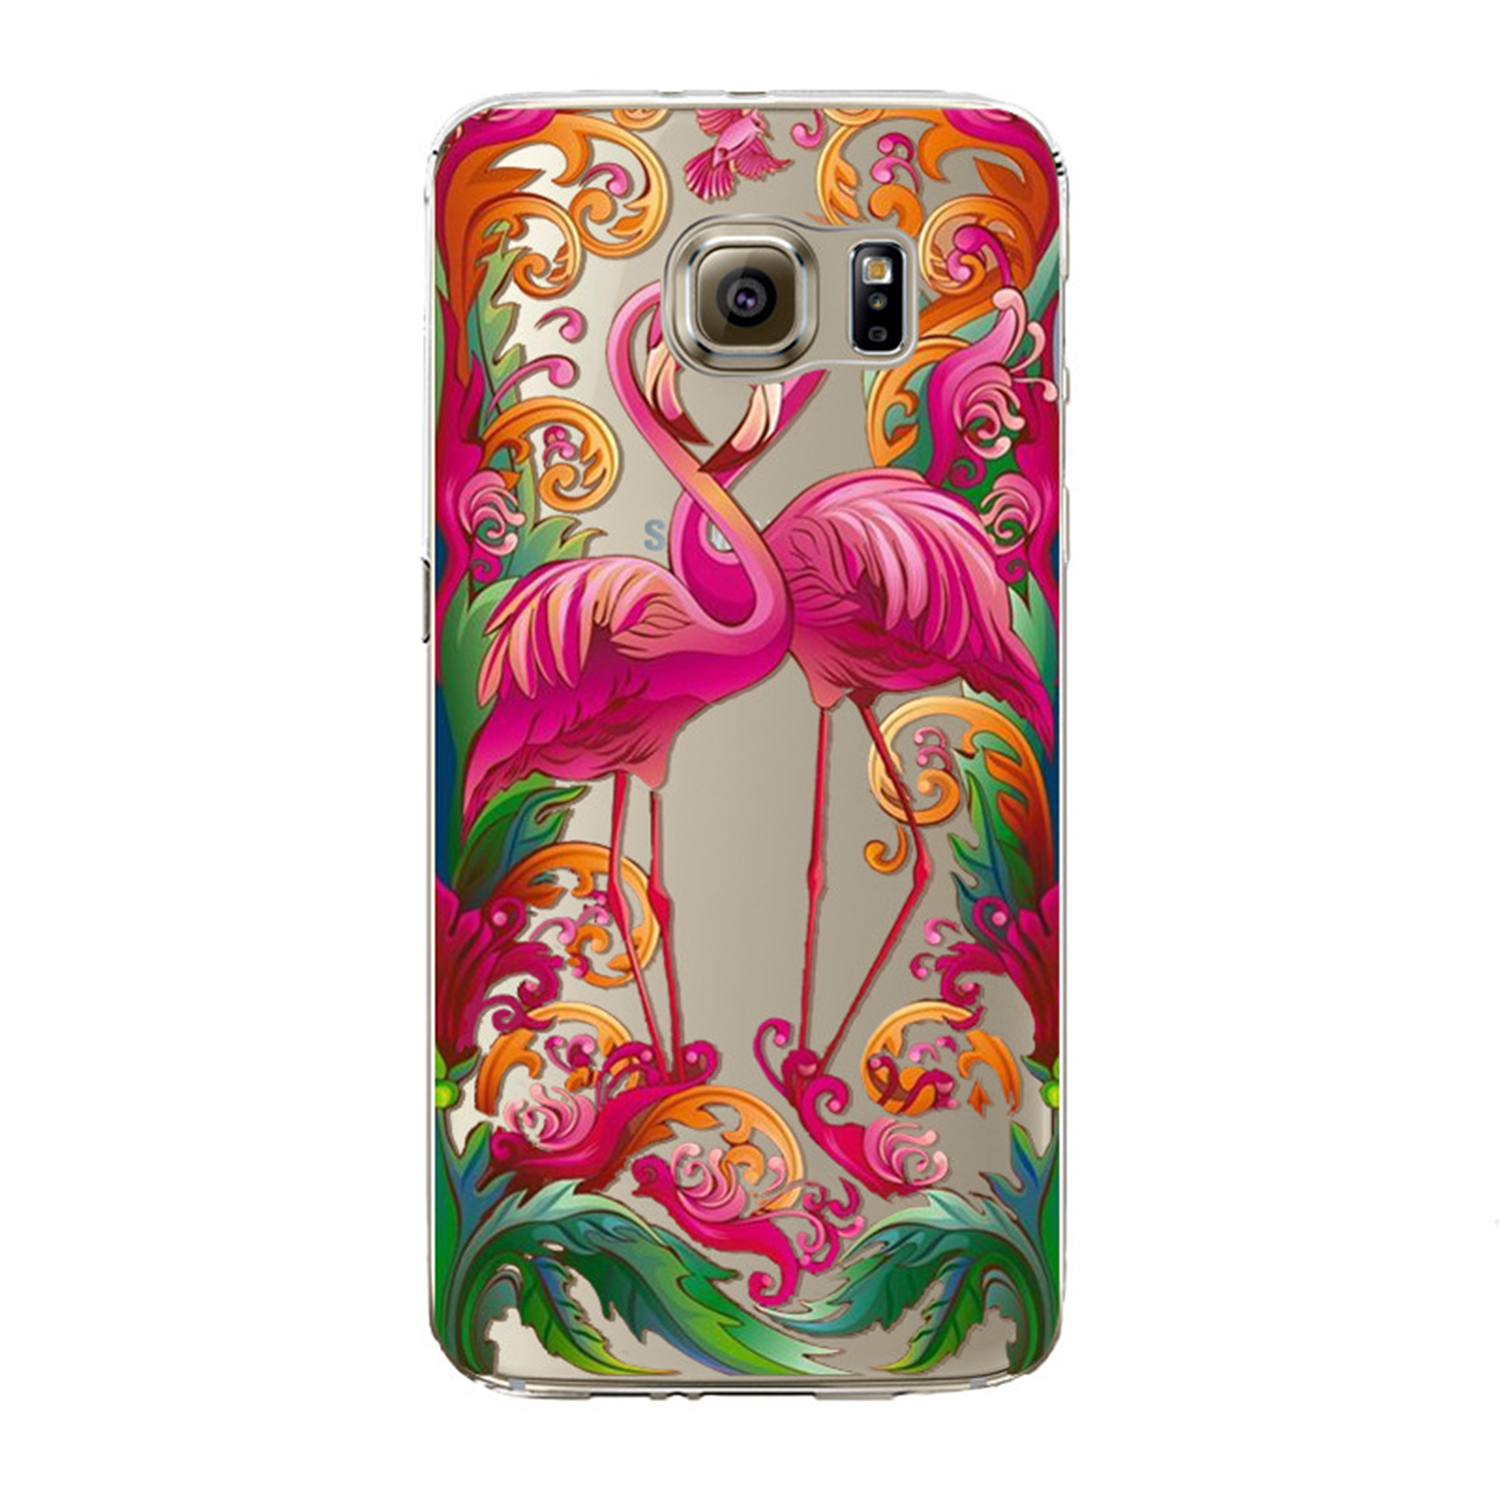 Kritzel Case Collection Galaxy S6 Edge - Mod. #478